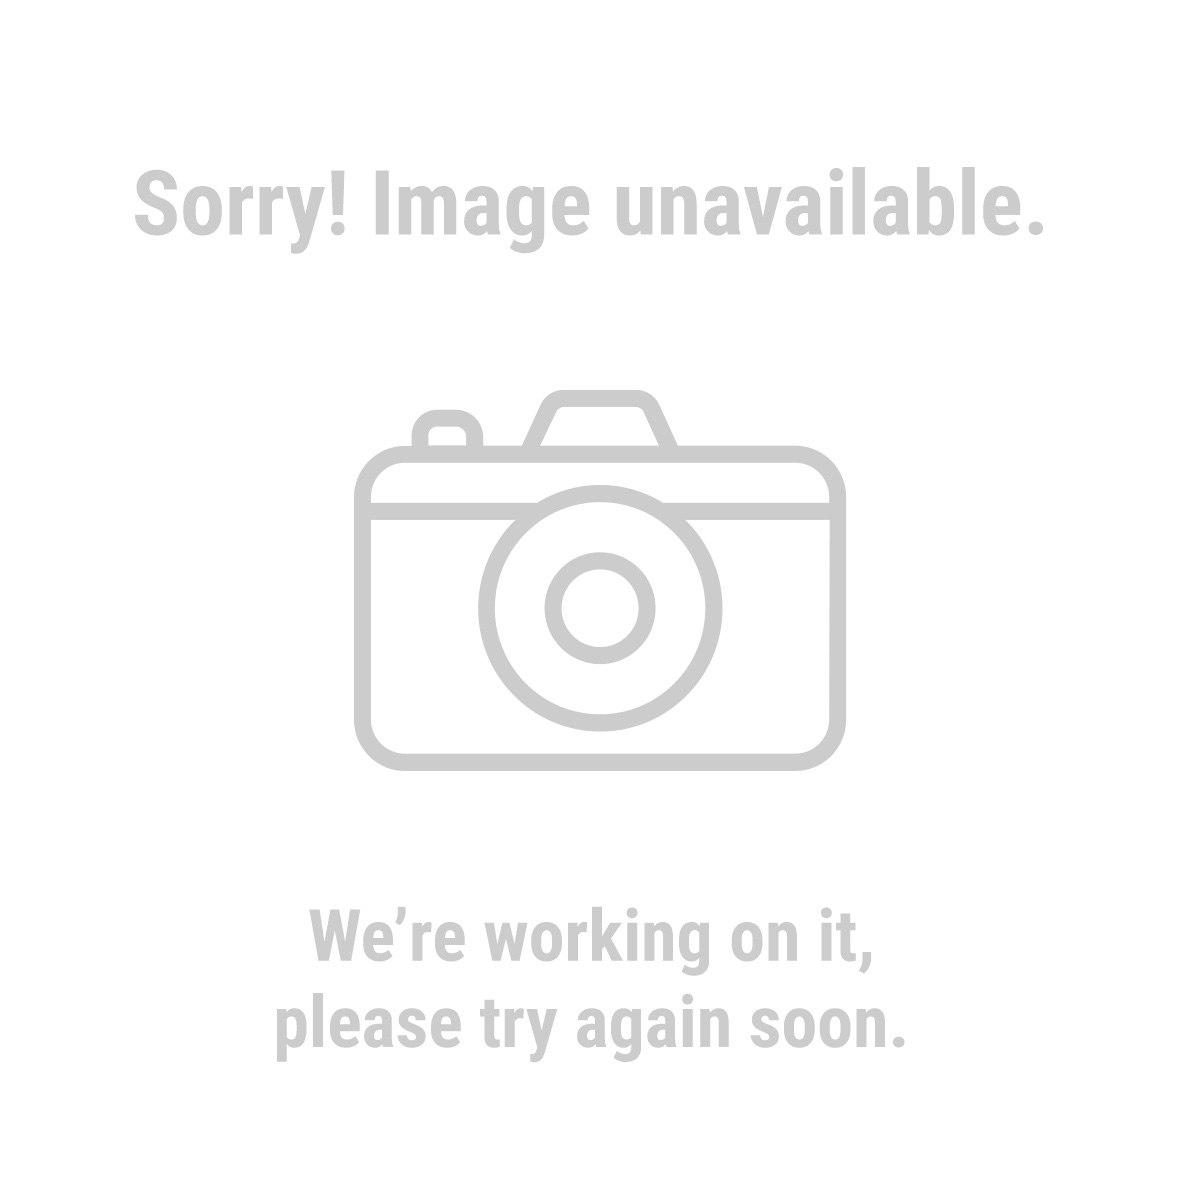 Harbor Freight Impact Wrench